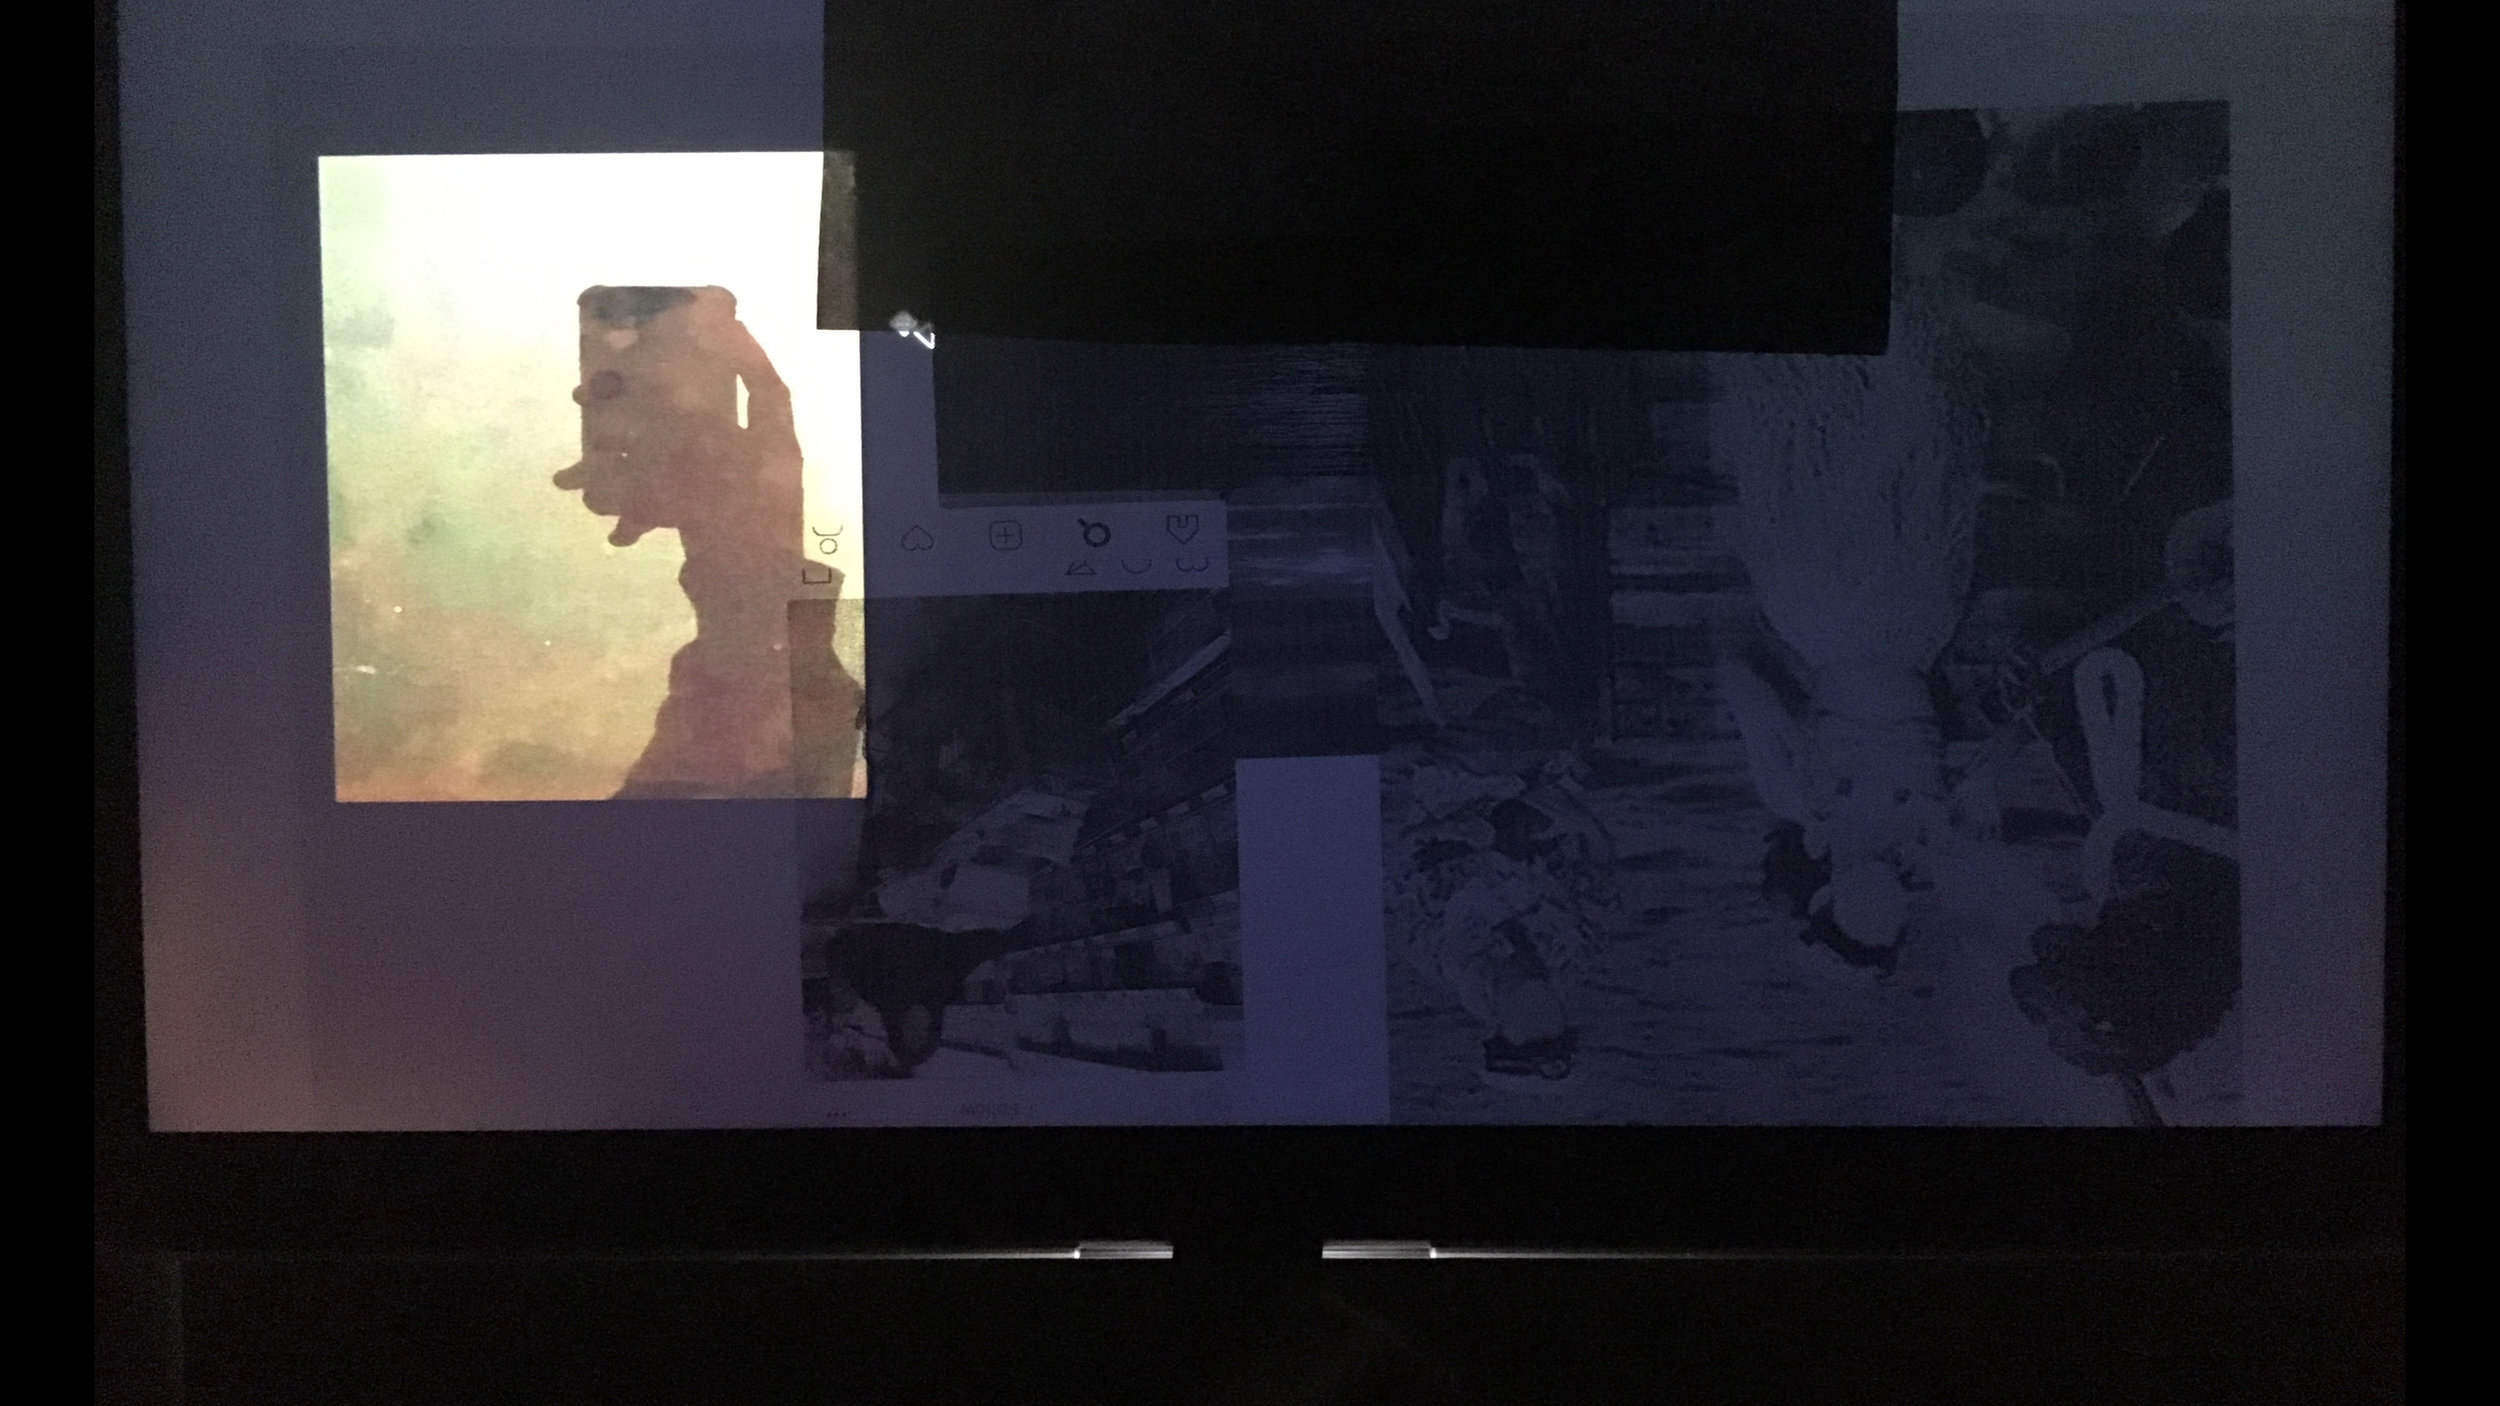 Screen Still #29: Reflections , 2018. Digital photograph, found images, paper, and glass on digital screen. 16:9, dimensions variable.